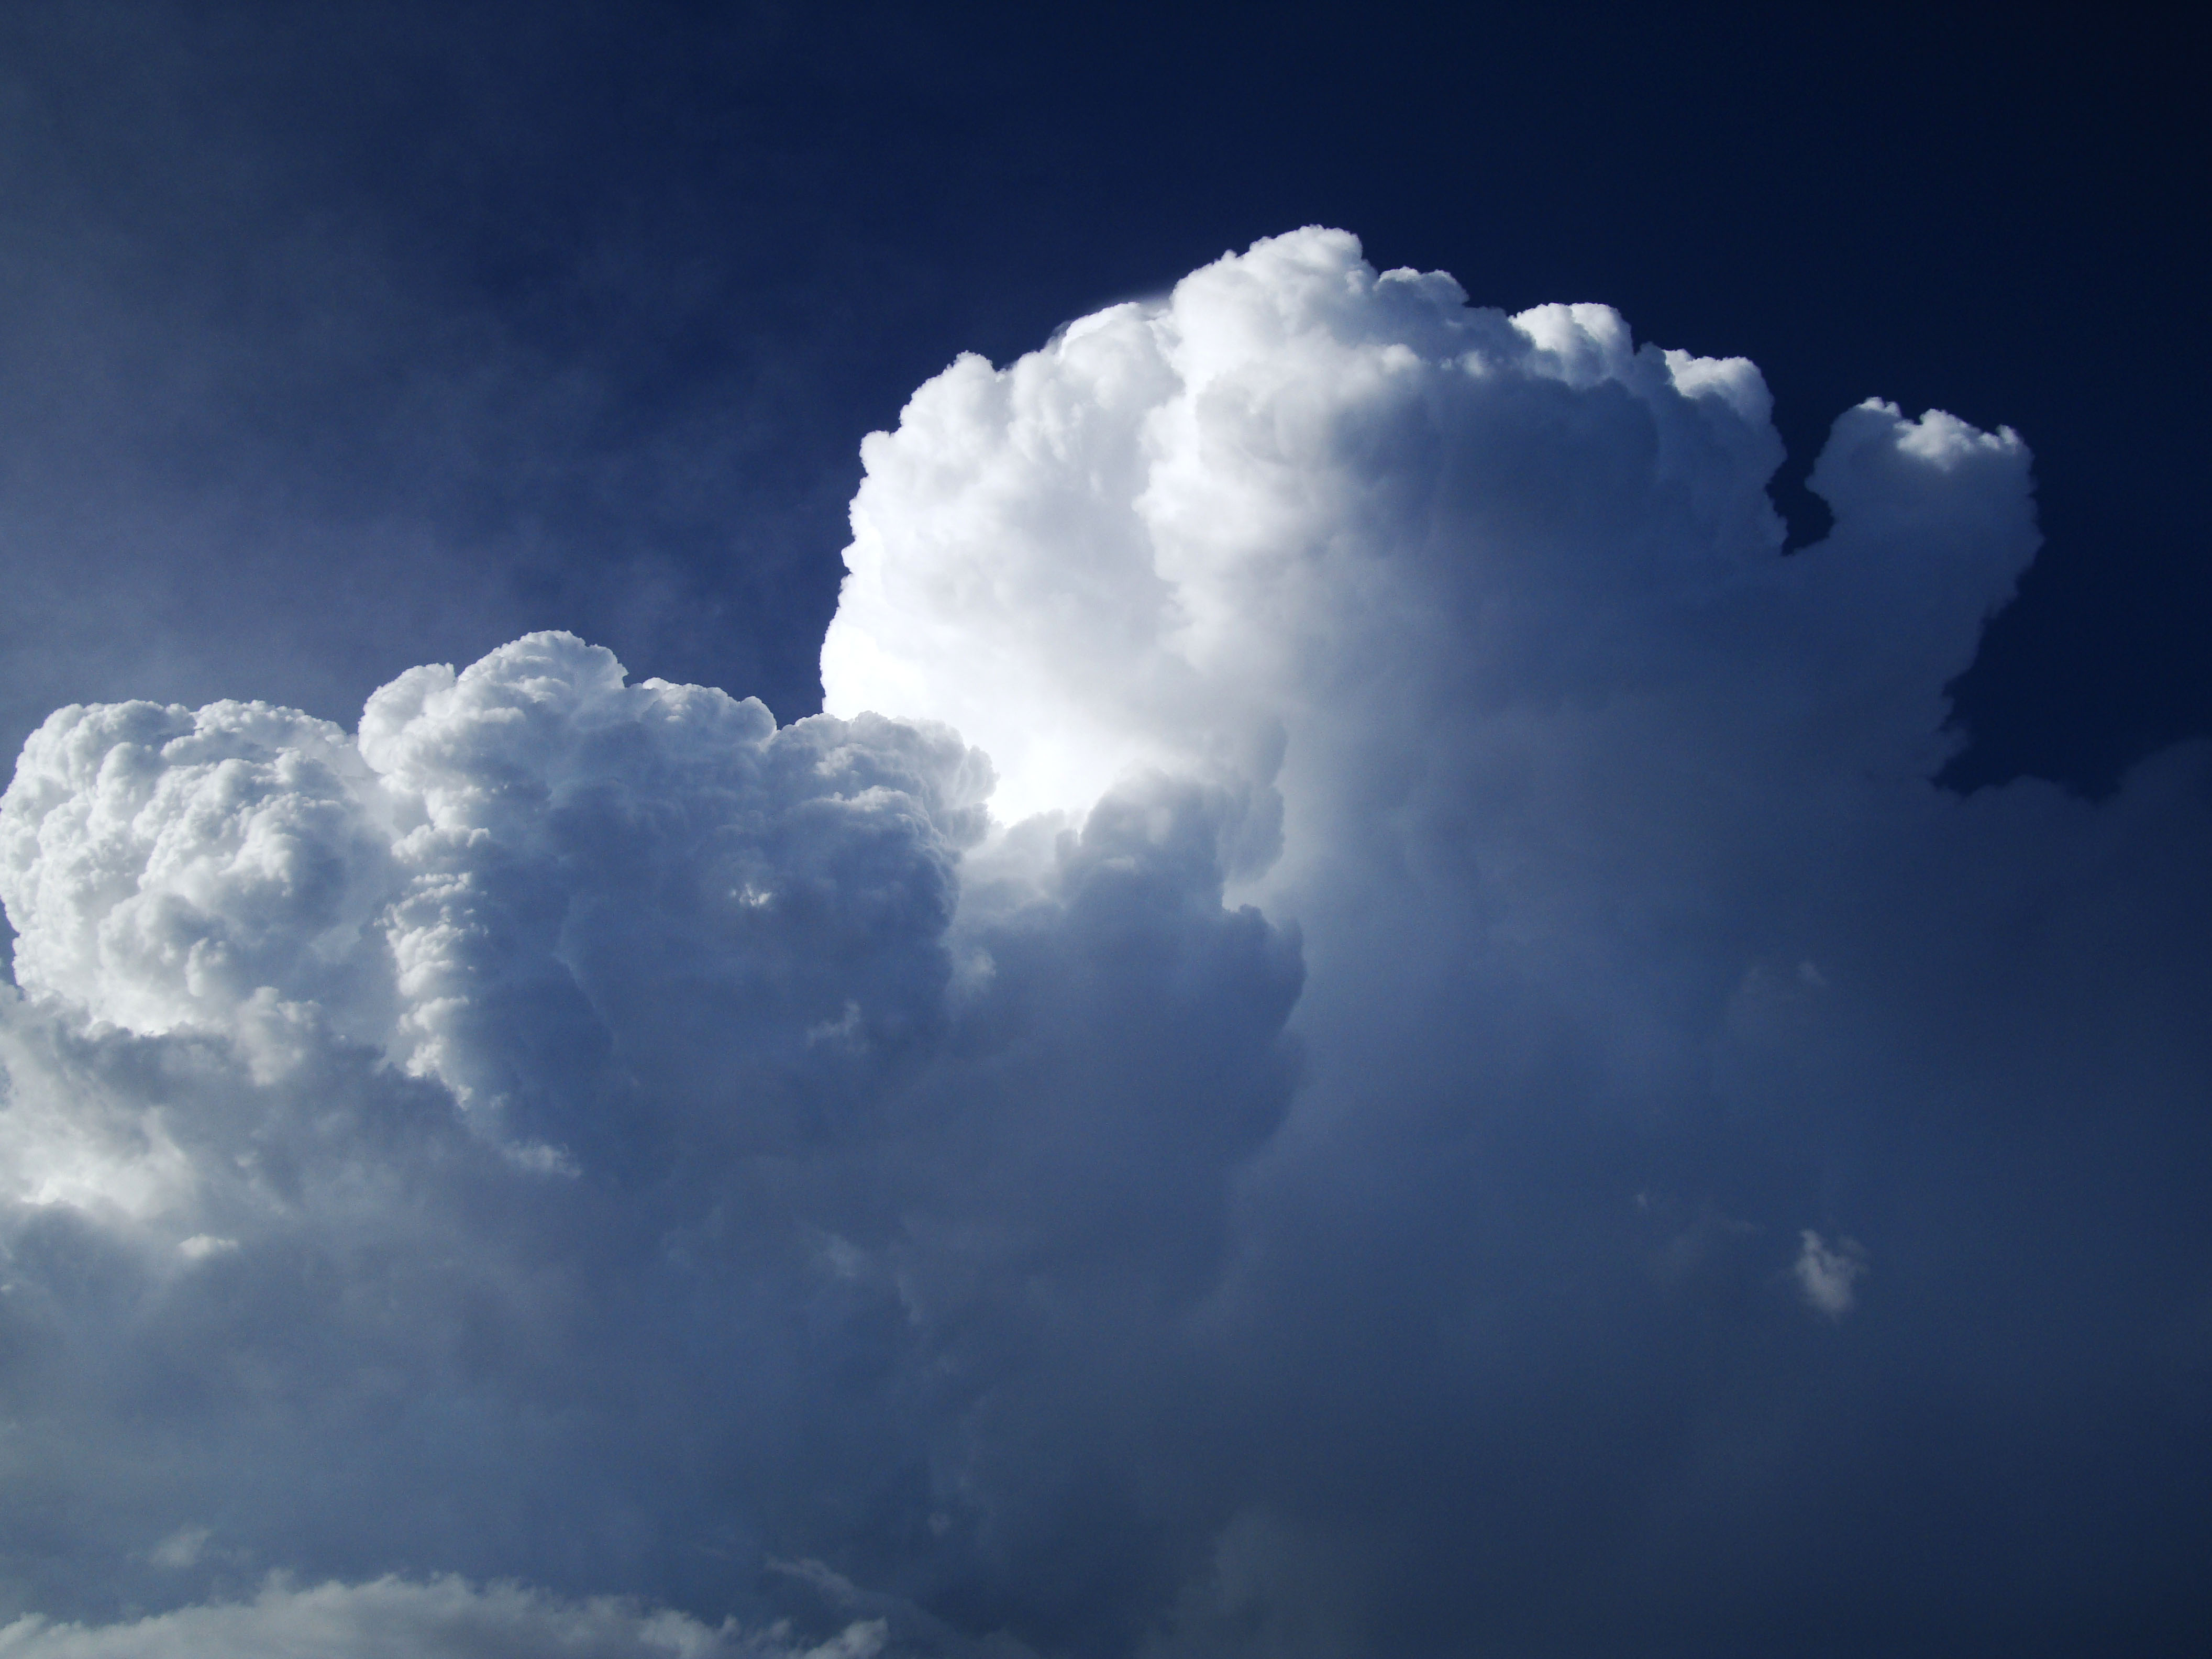 Cumulonimbus Clouds Formations Sky Storms Weather Phenomena 01